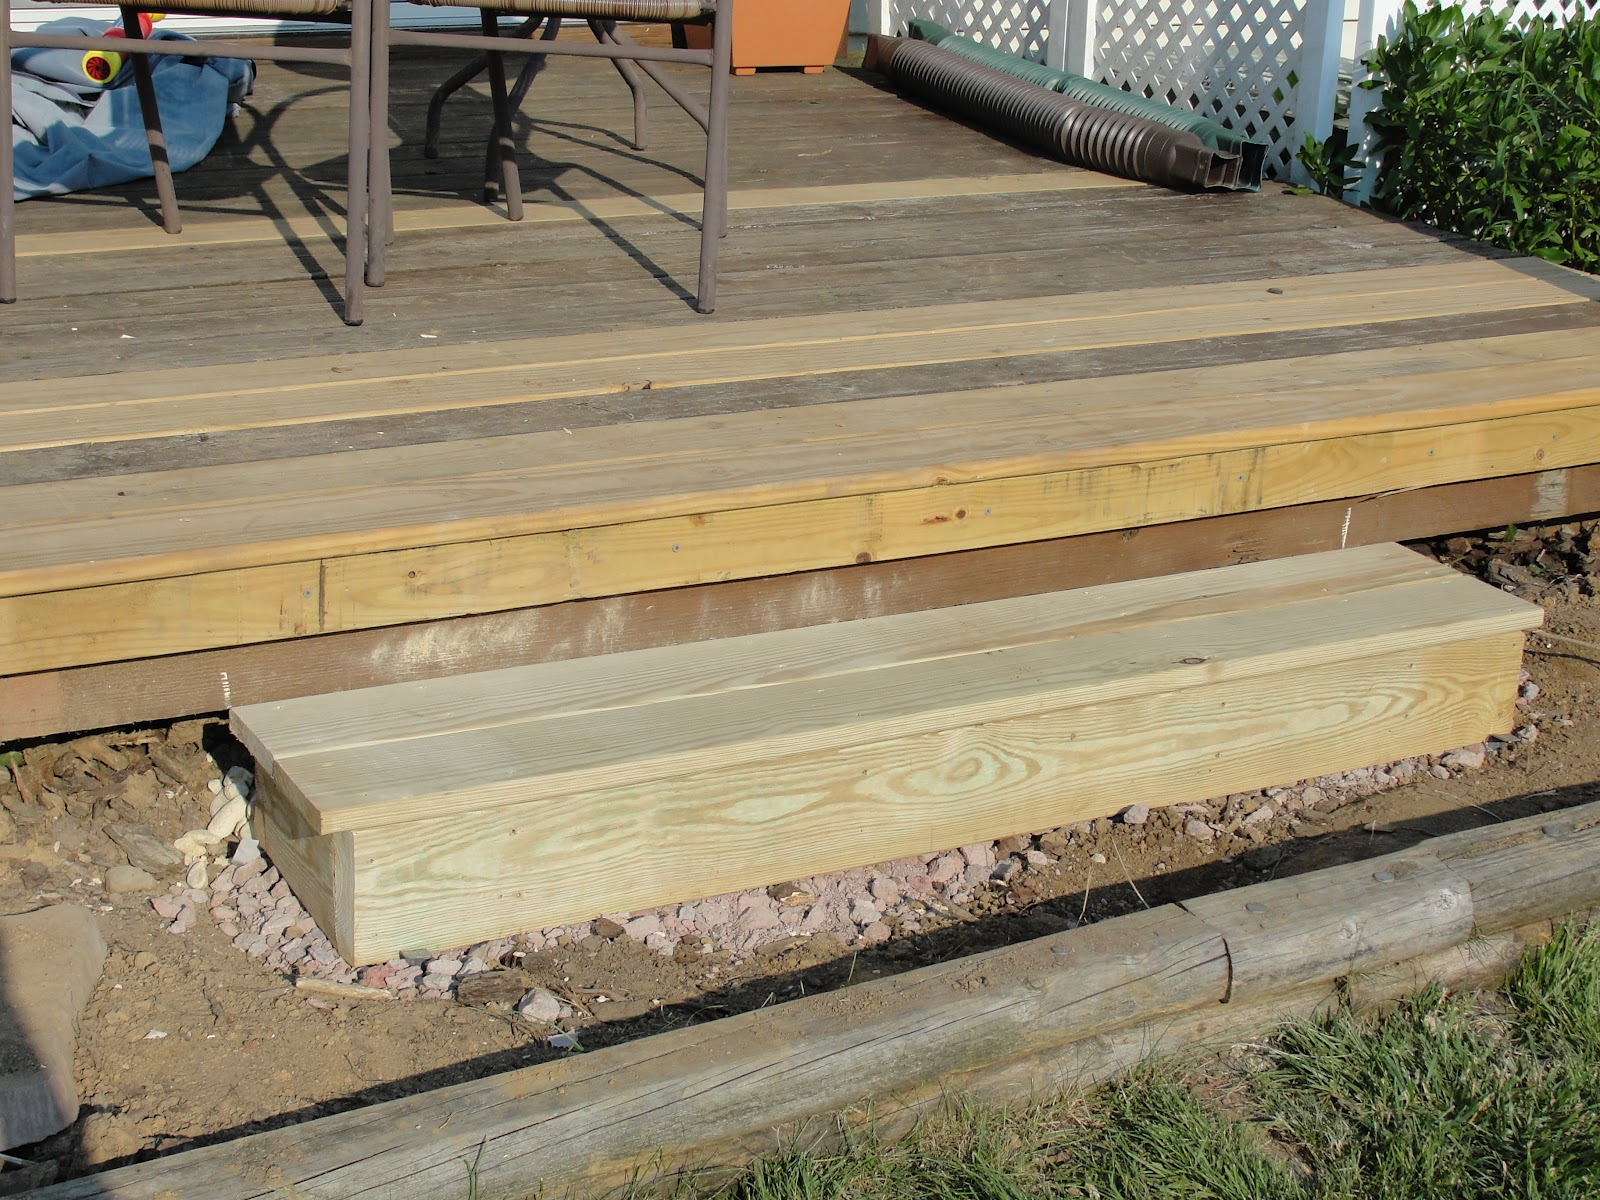 Build Deck Stairs | How to Build A Handrail for Deck Stairs | Deck Stair Brackets